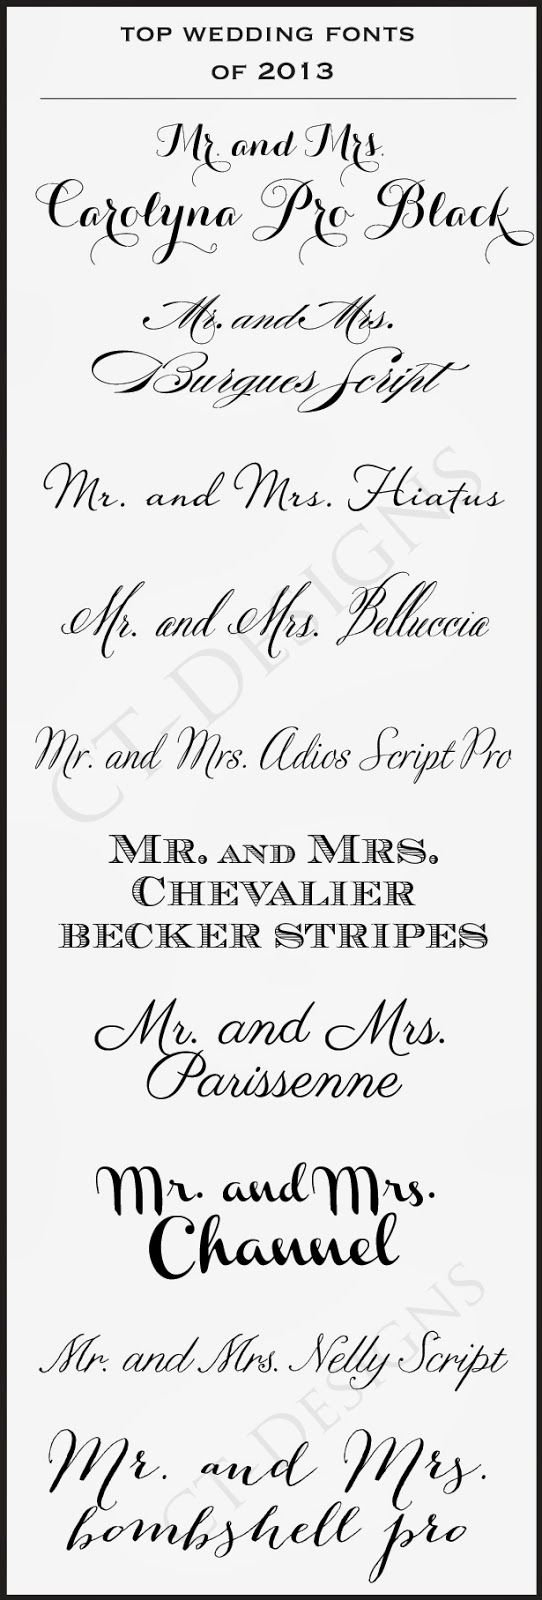 CT-Designs Calligraphy and Wedding Stationery: Top #Wedding #Fonts of 2013 #WeddingFonts #WeddingPlanning